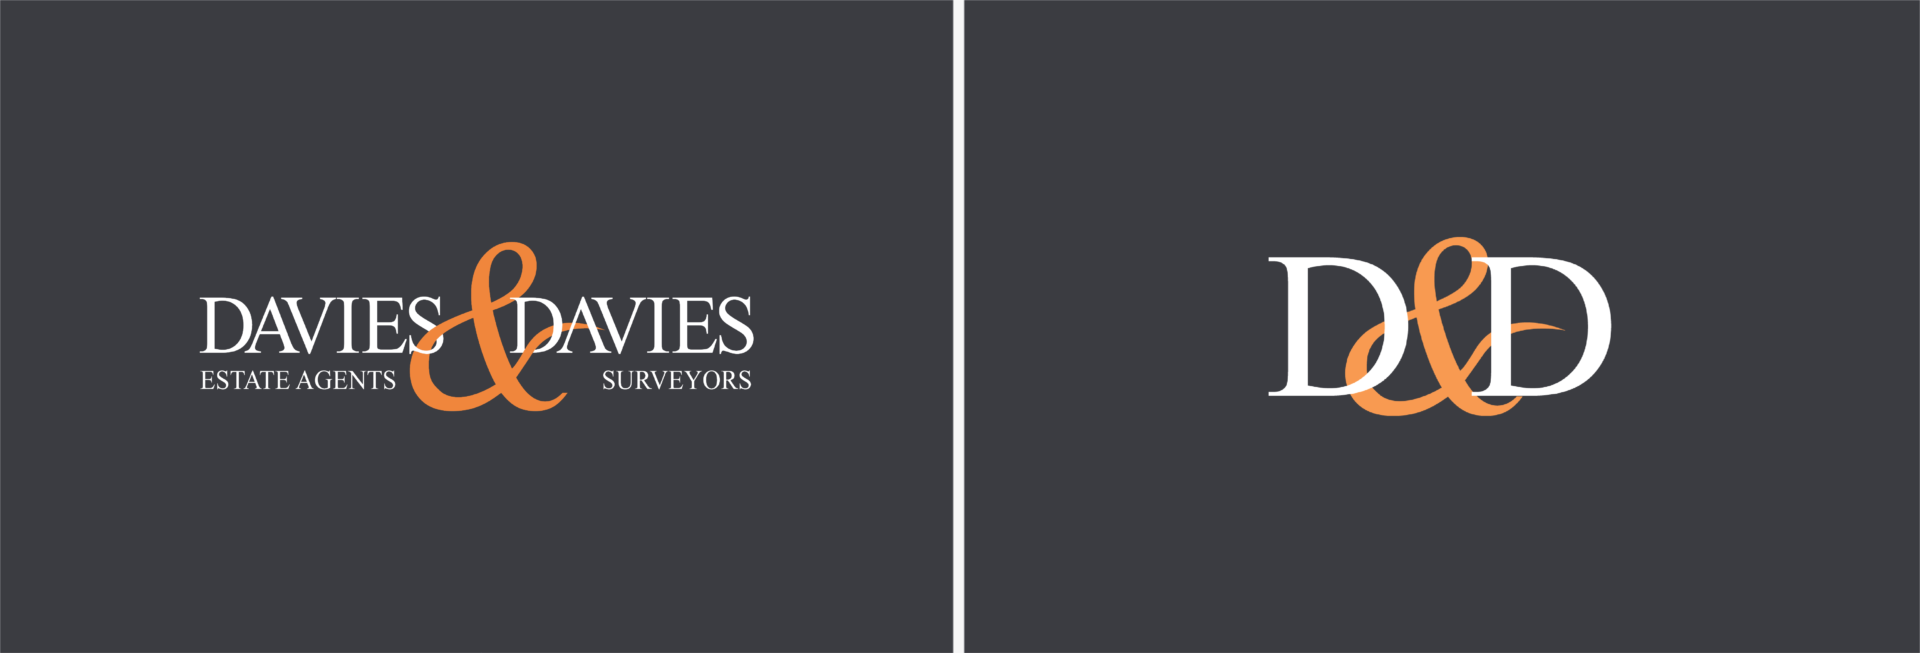 Two logos for North London, Estate Agents, Davies & Davies. Graphic design by Barefaced Studios, design agency based in Islington, North London.